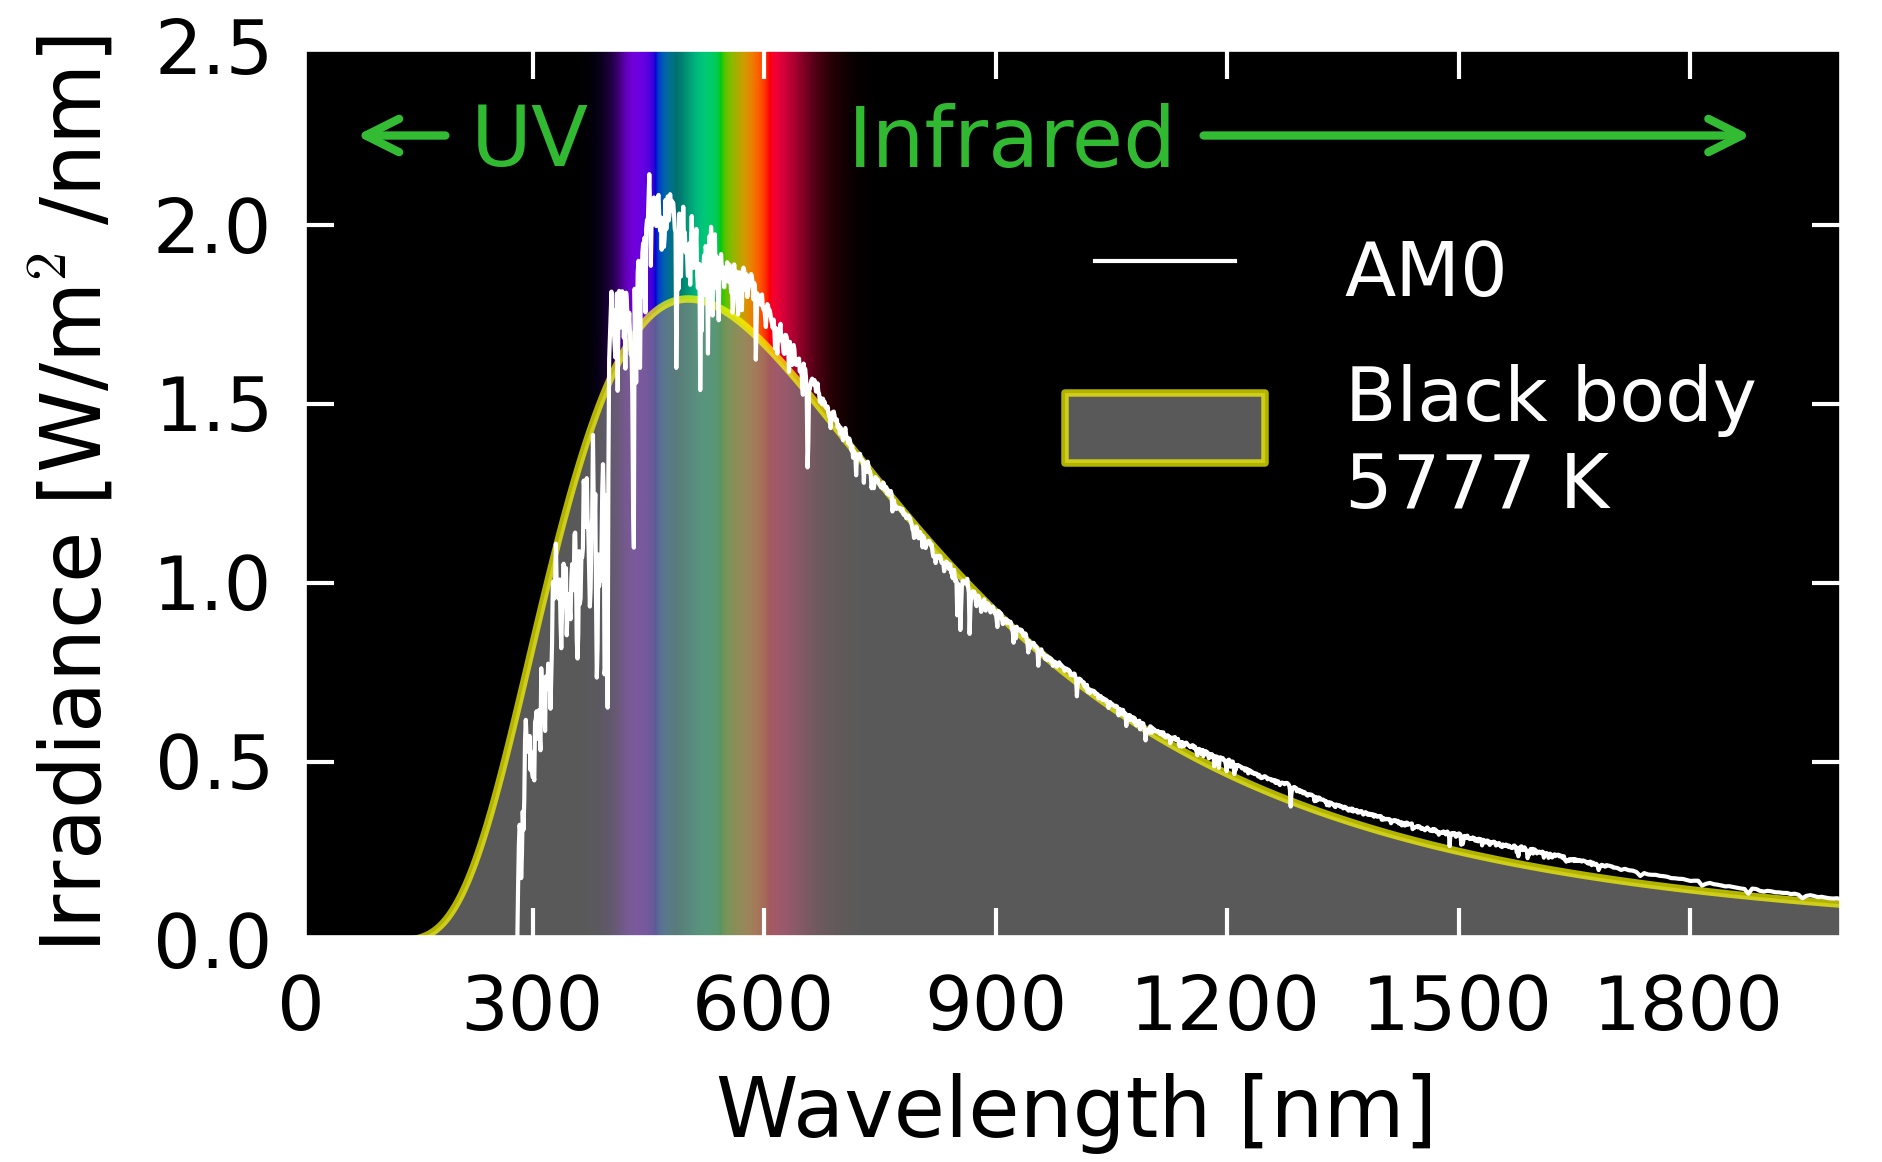 This graph shows the variation of blackbody Radiation intensity with wavelengths expressed in micrometers. The radiation curve of the sun (measured above the atmosphere is shown to agree very well with a curve corresponding to black body radiation from an object with temperature of 5777 K. The visible region of the spectrum is highlighted to show that the radiation curve of the sun is peaked in the visible region.